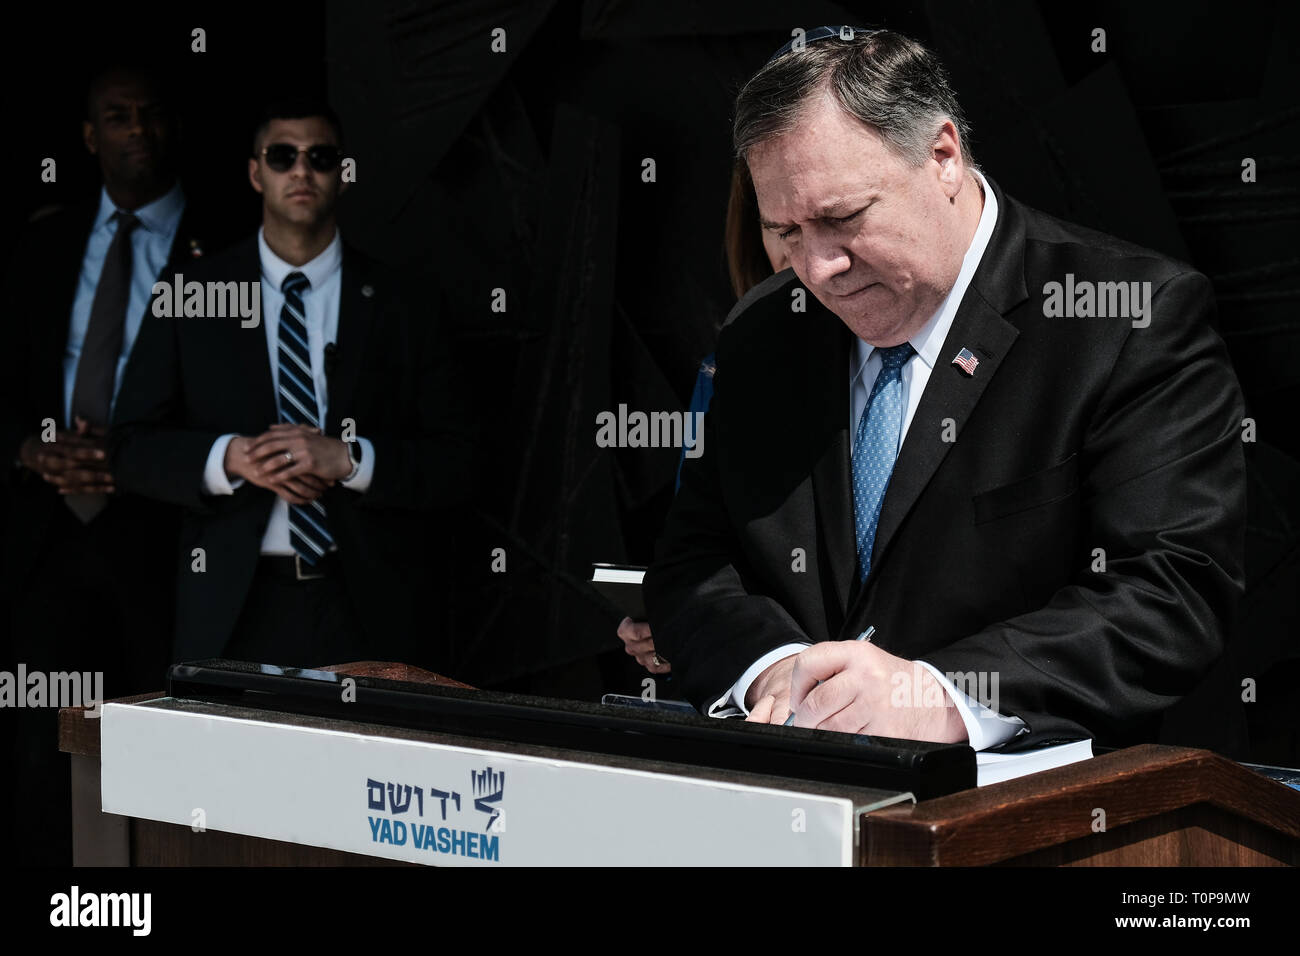 """Jerusalem, Israel. 21st March, 2019. Secretary of State of the United States of America, MICHAEL MIKE POMPEO (R), visits Yad Vashem World Holocaust Remembrance Center touring the """"Flashes of Memory - Photography during the Holocaust"""" exhibition, partaking in a memorial ceremony in the Hall of Remembrance and signing the guest book. Pompeo's visit to Israel comes ahead of a meeting between Trump and Netanyahu planned for 25th March, 2019, in Washington, perhaps signaling the U.S. Credit: Nir Alon/Alamy Live News Stock Photo"""